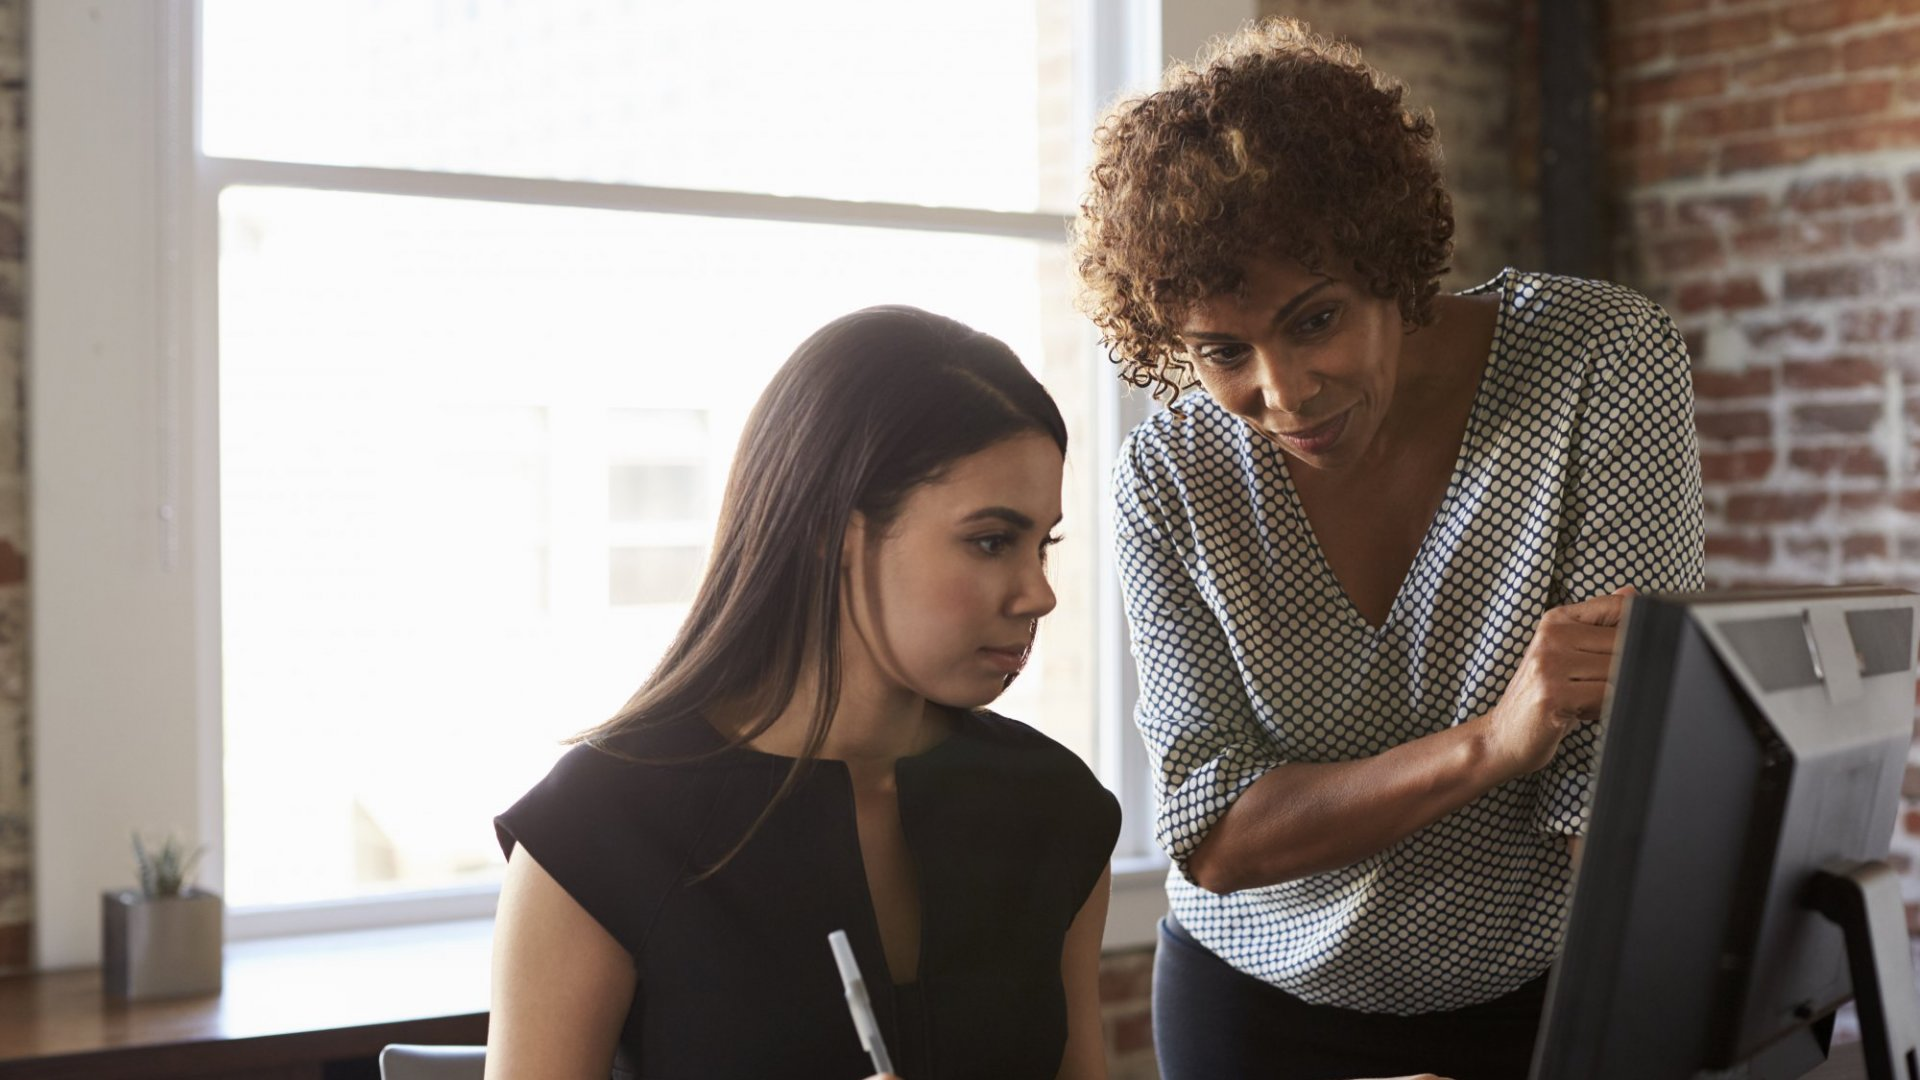 5 Tips to Learn From a Mentor When You Don't Want to Ask for Their Time